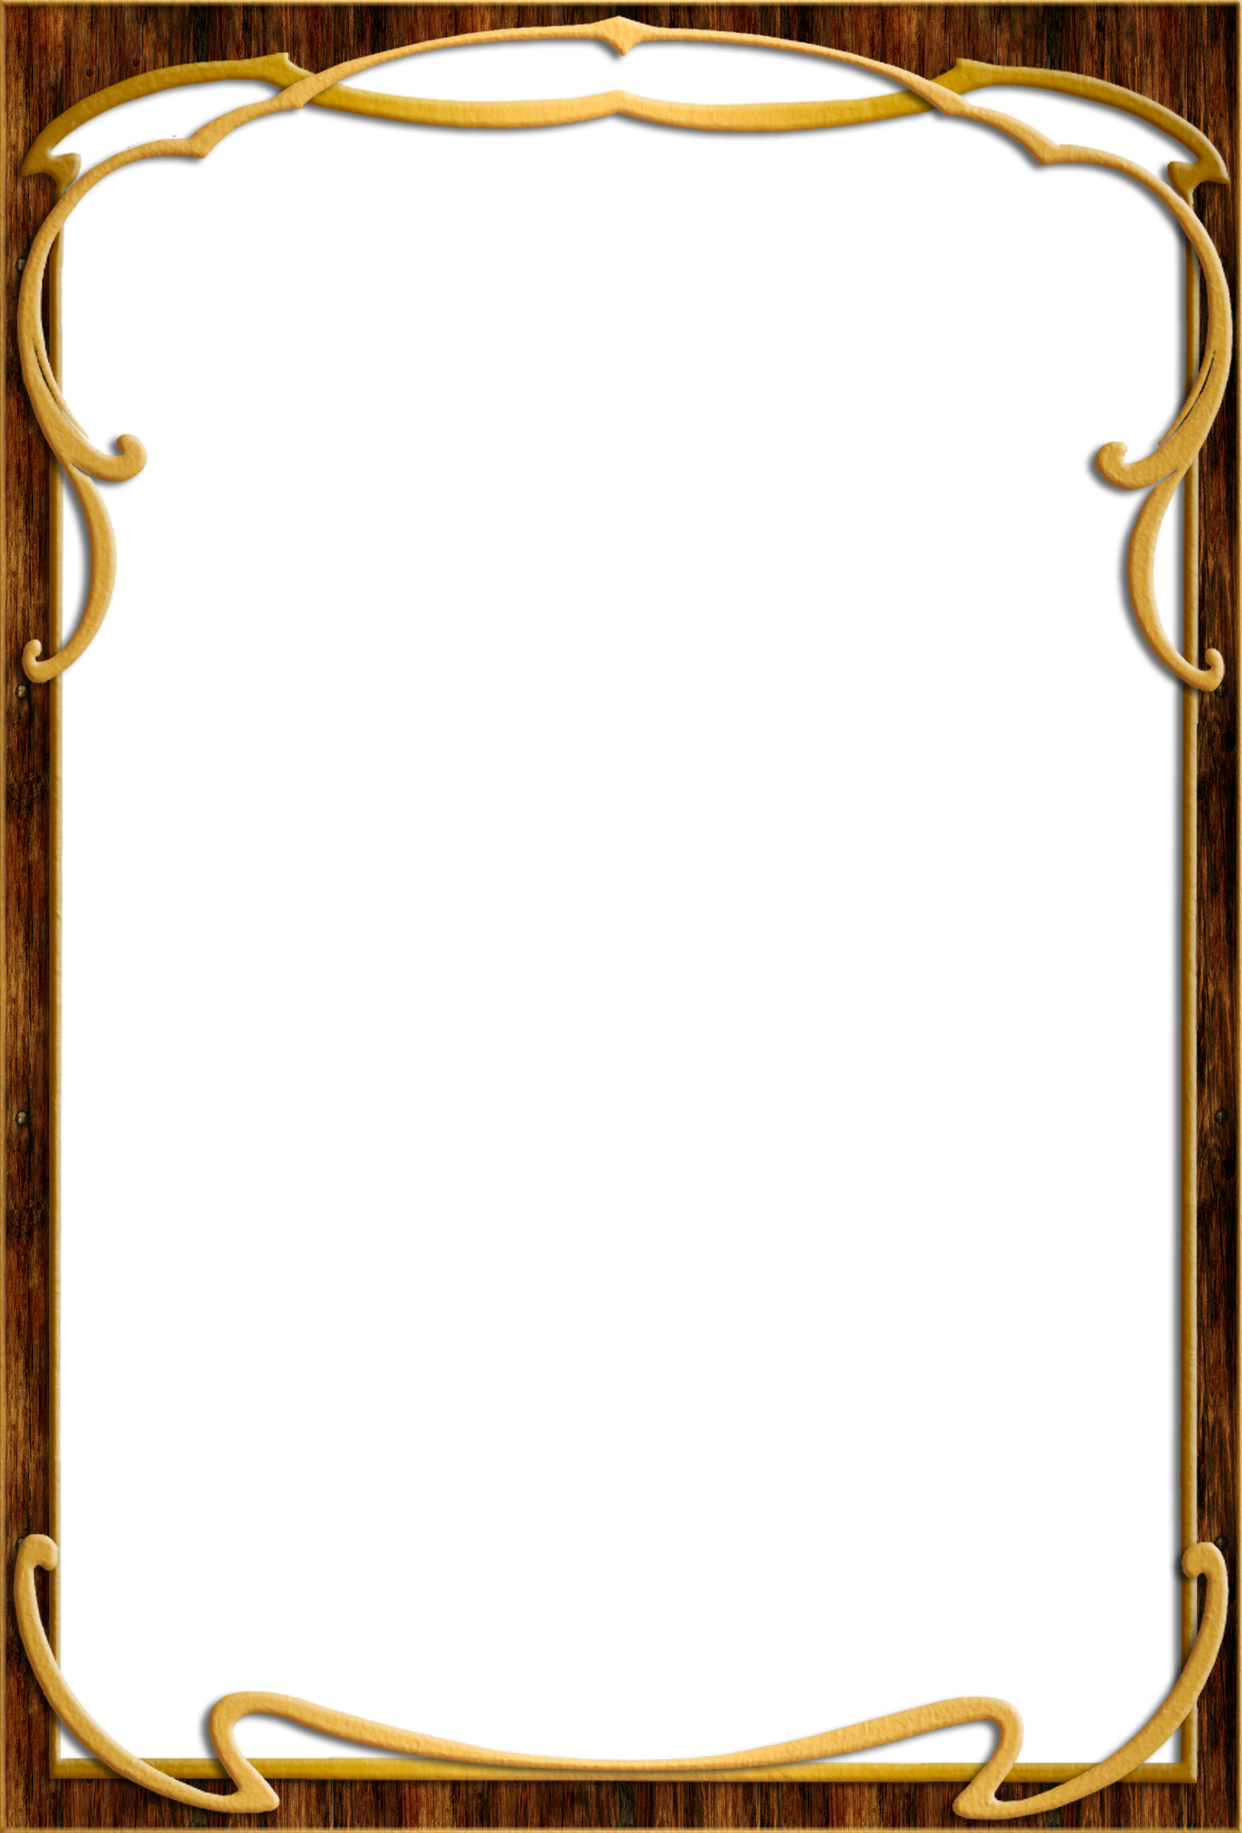 Wood frame images free. Photo frames png picture